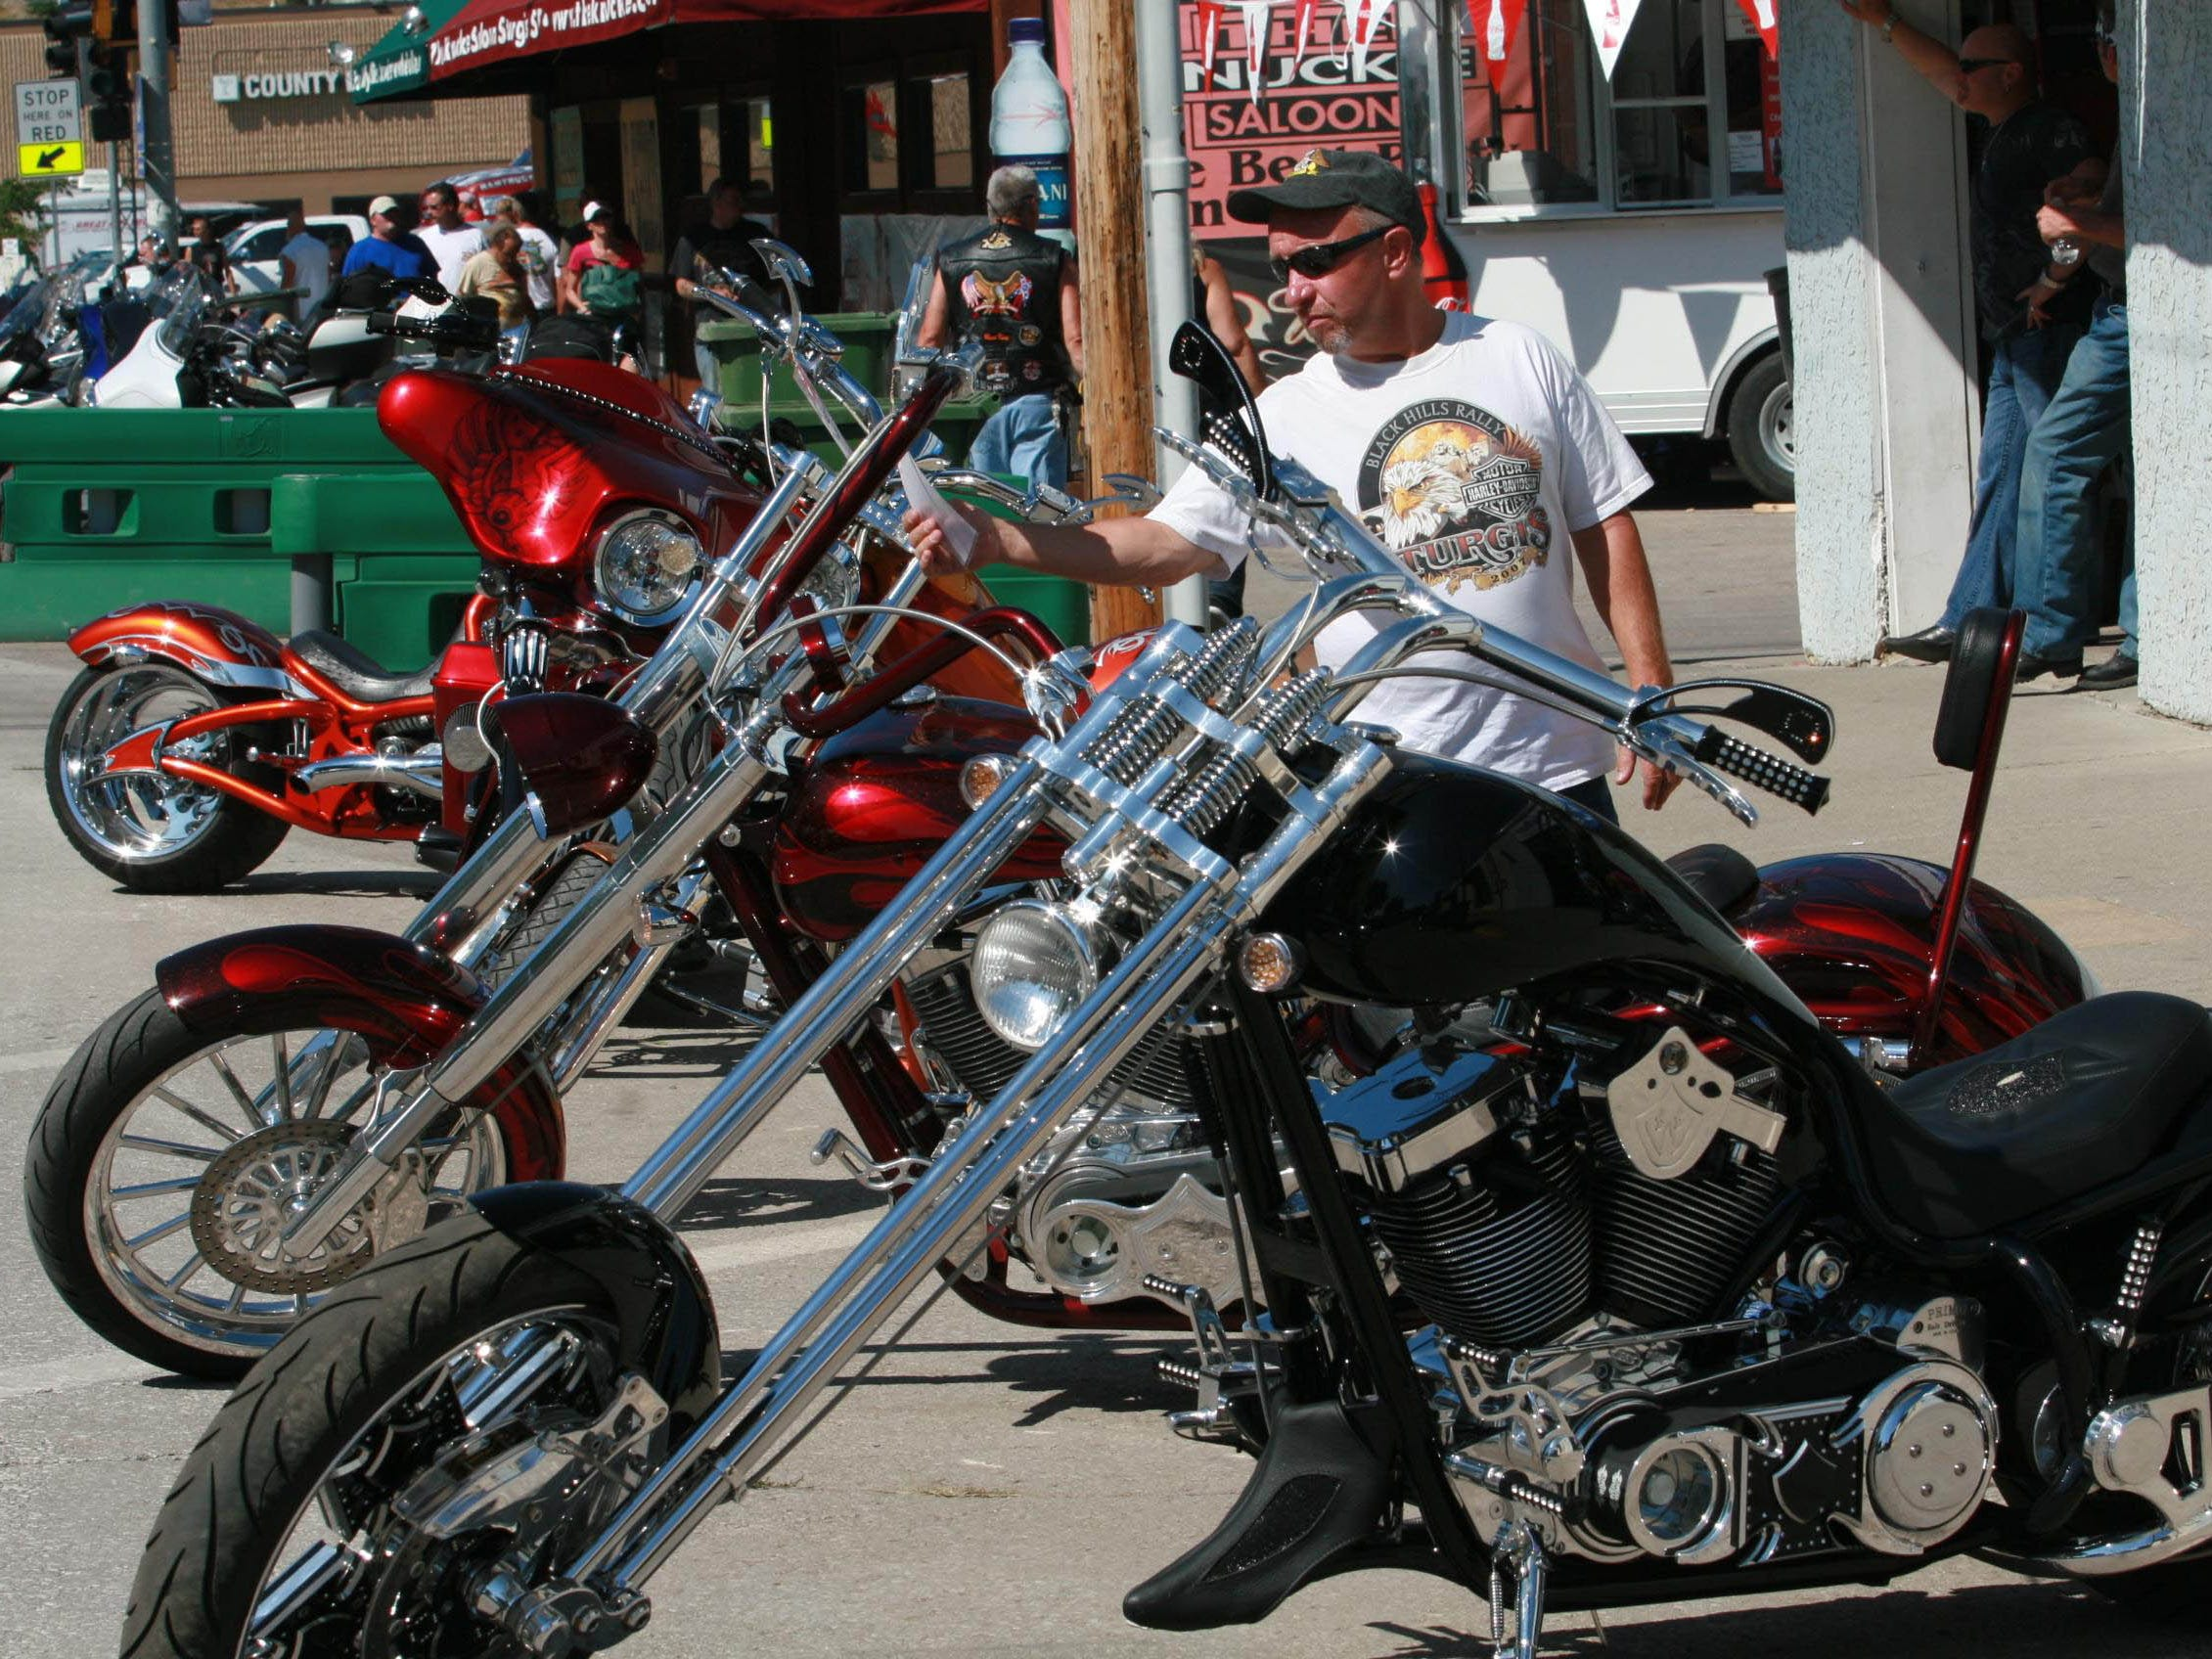 2012: Rally-goers check out custom bikes at the AMD World Championship of Bike Building.